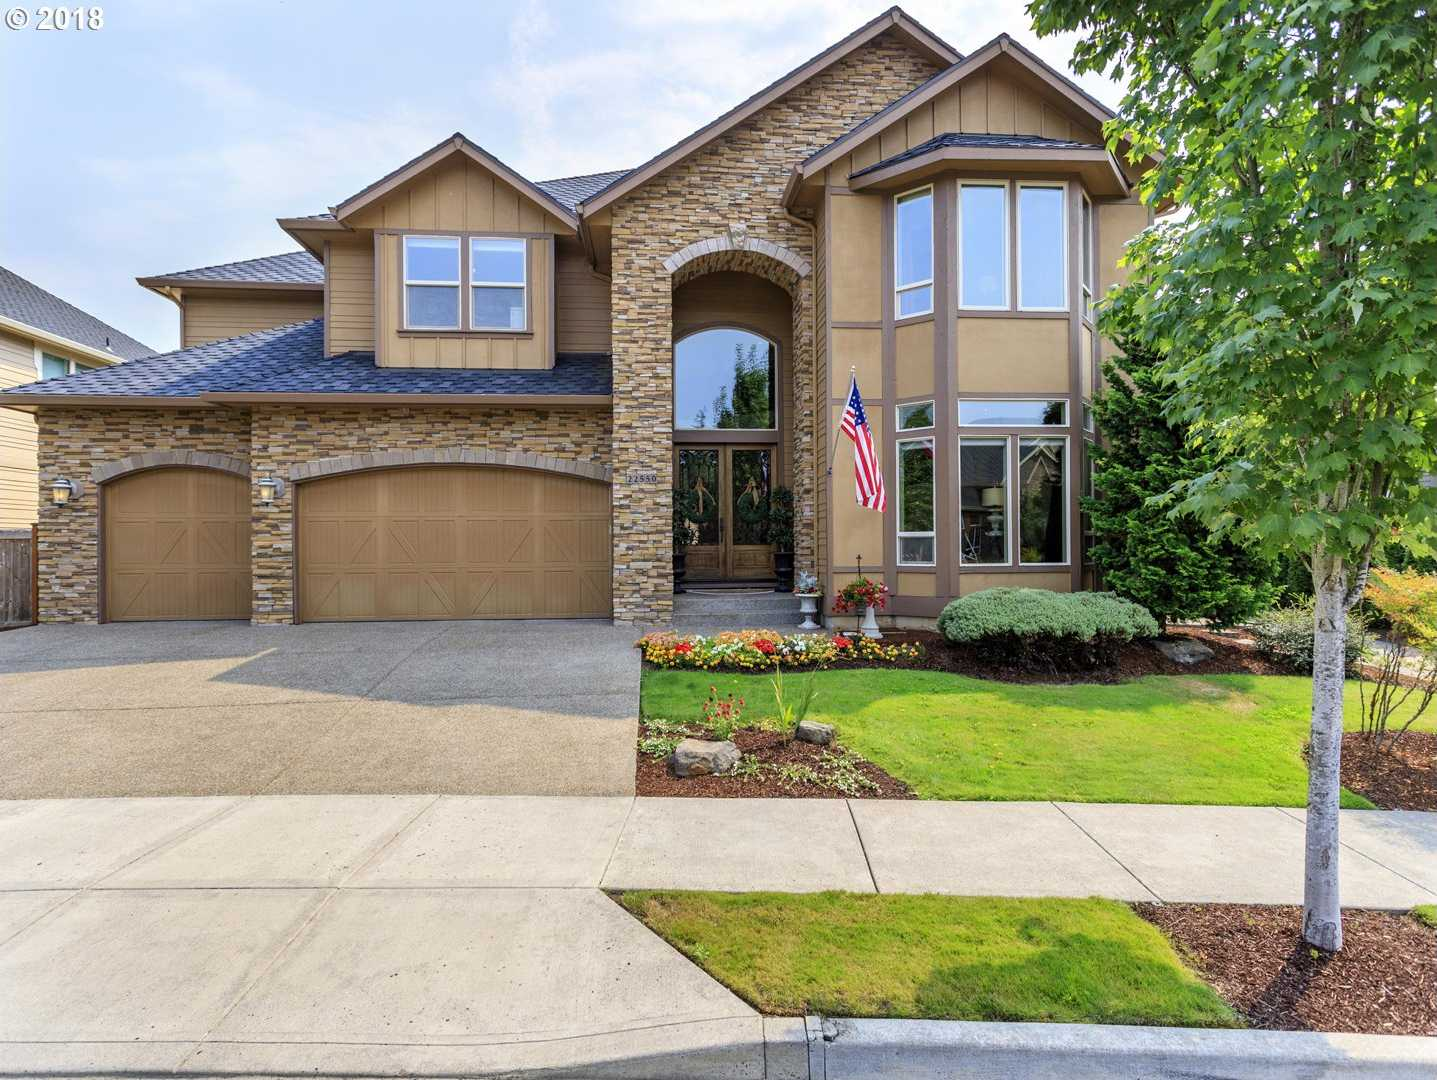 $724,000 - 5Br/3Ba -  for Sale in Victoria Woods, Tualatin